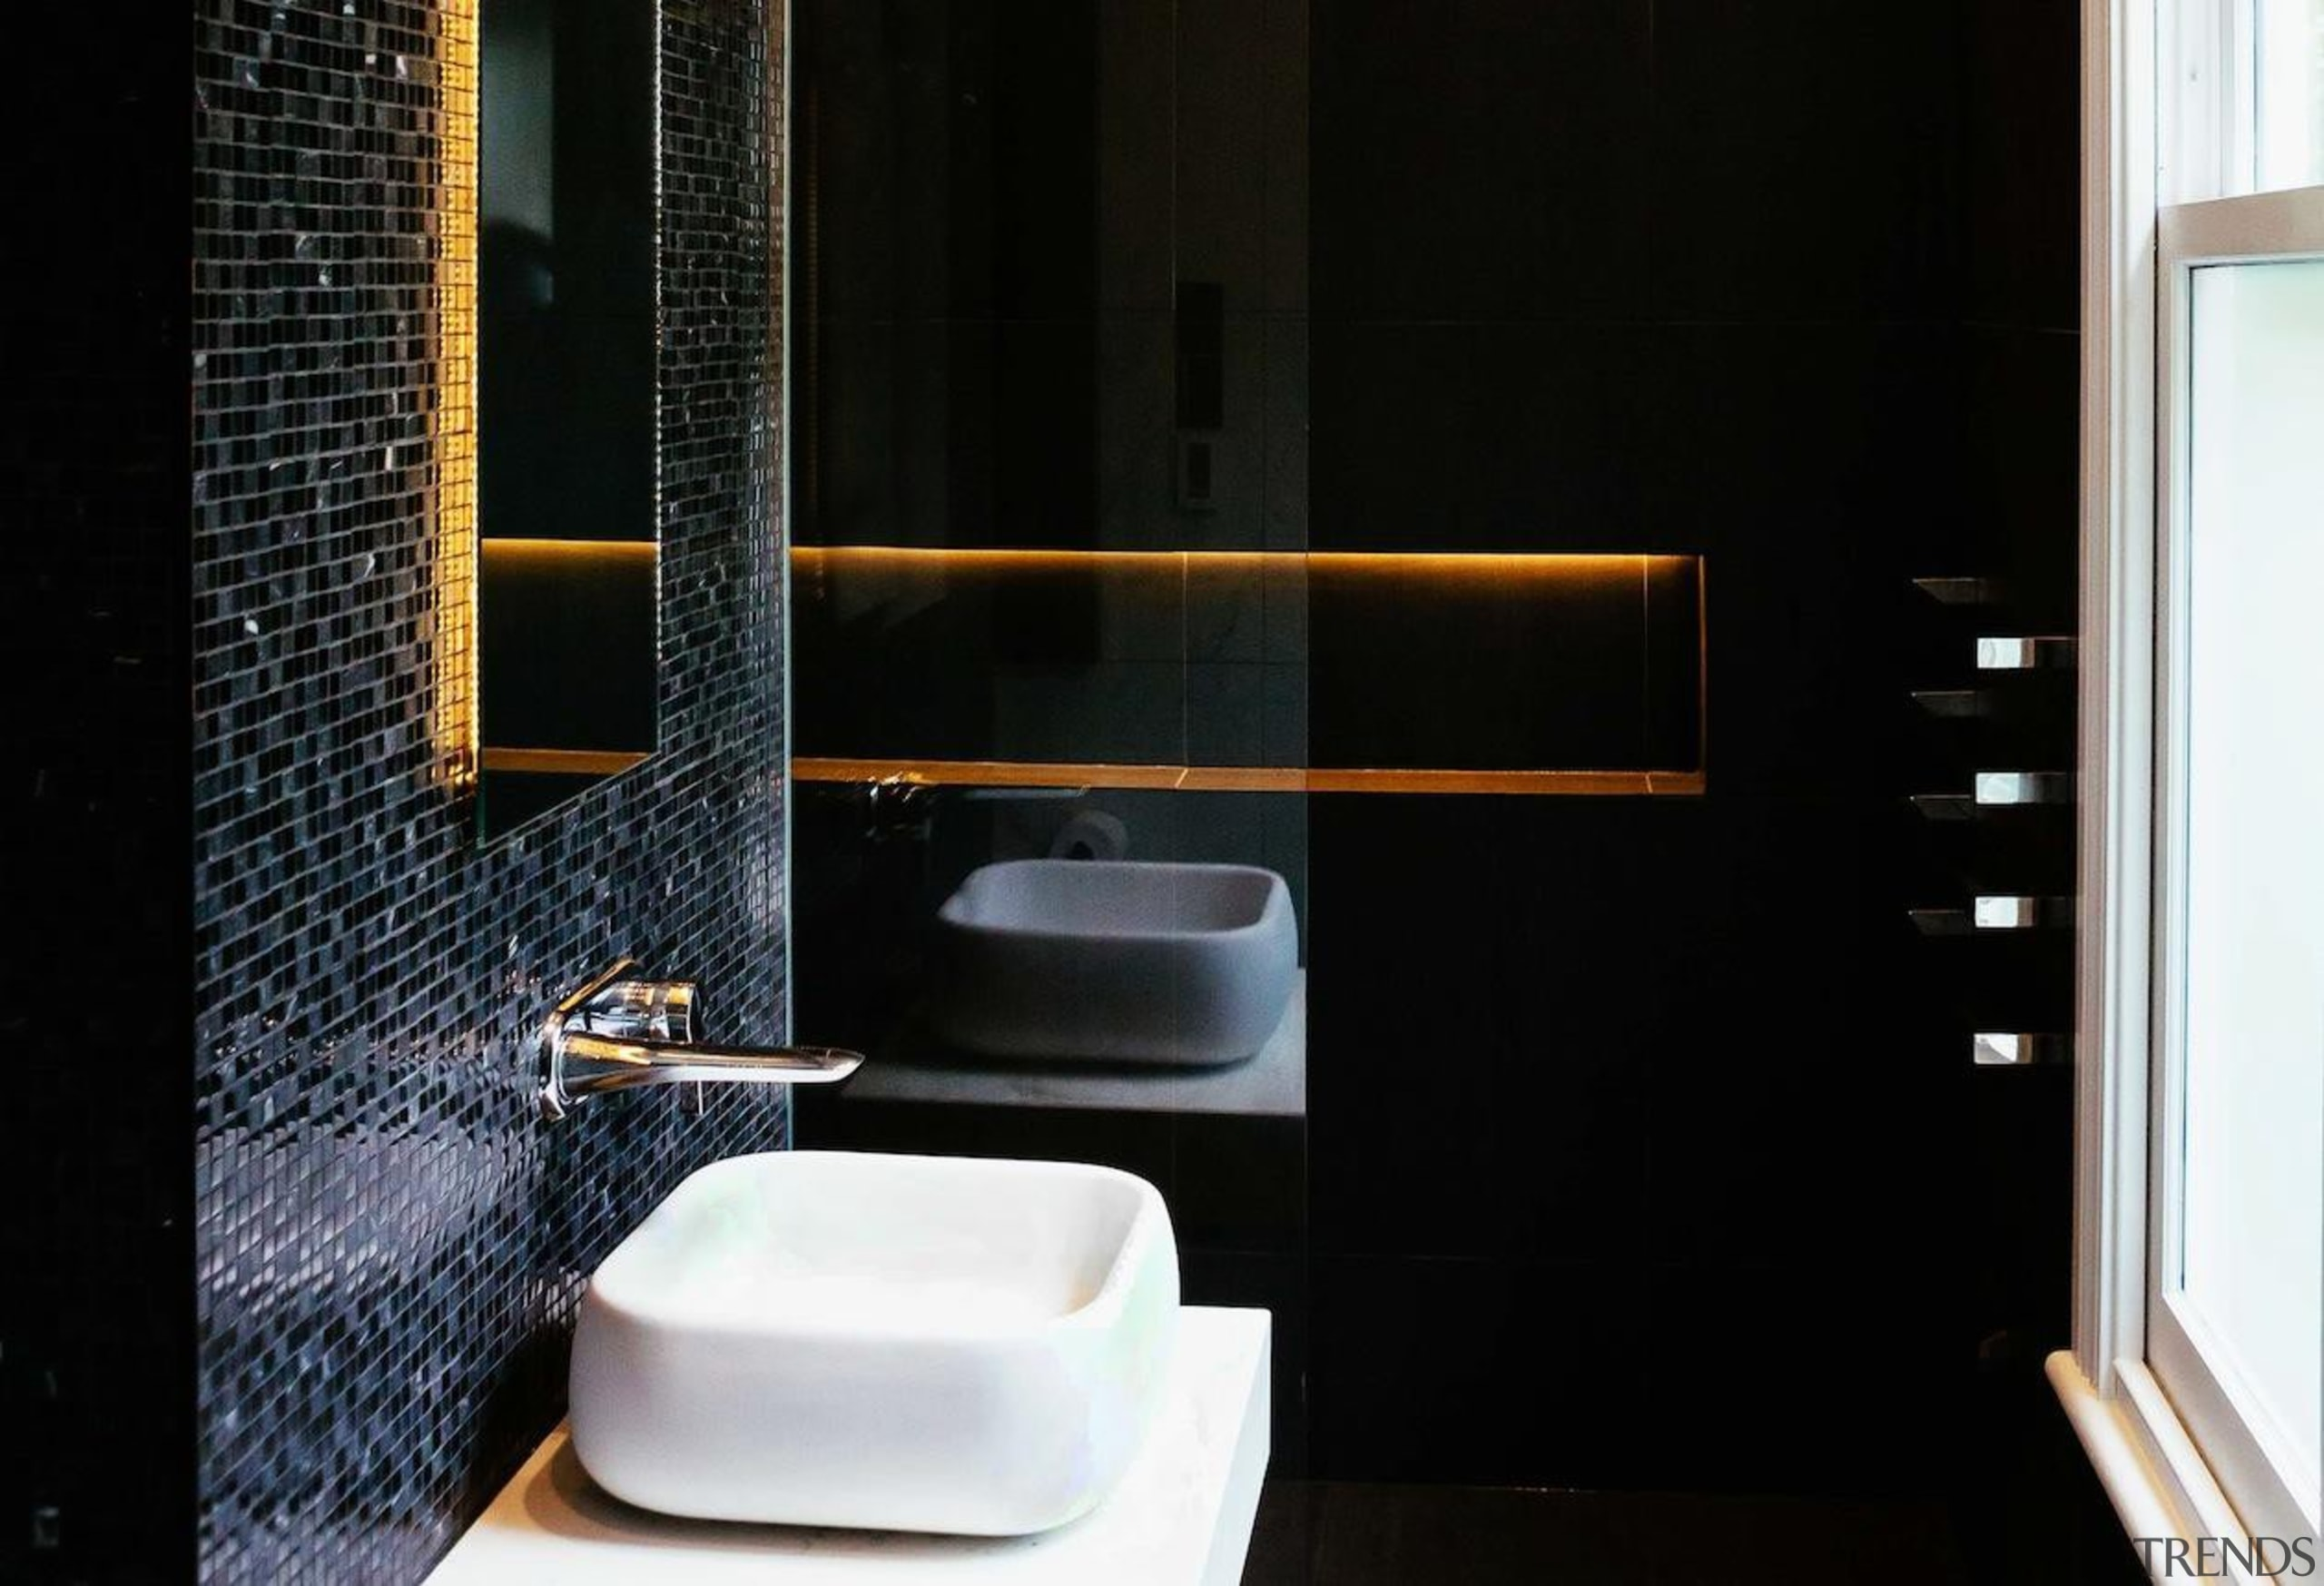 Studio 106 – Highly Commended - 2015 Trends bathroom, interior design, plumbing fixture, room, sink, black